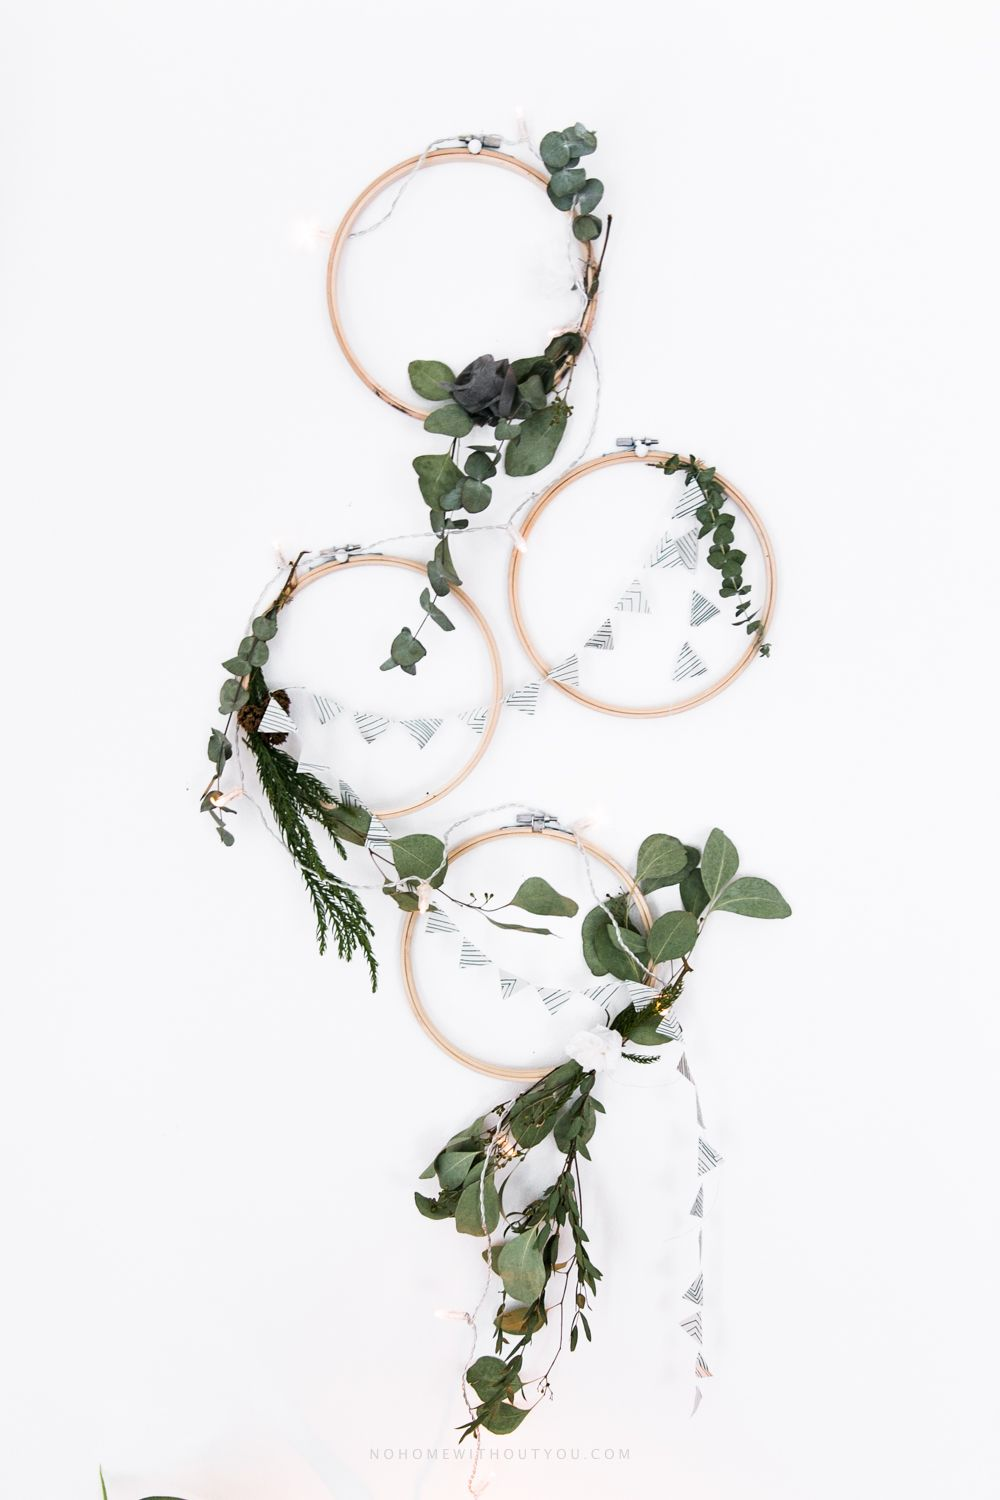 DIY plant wreath eucalyptus coniferous No Home Without You (10 of 12)